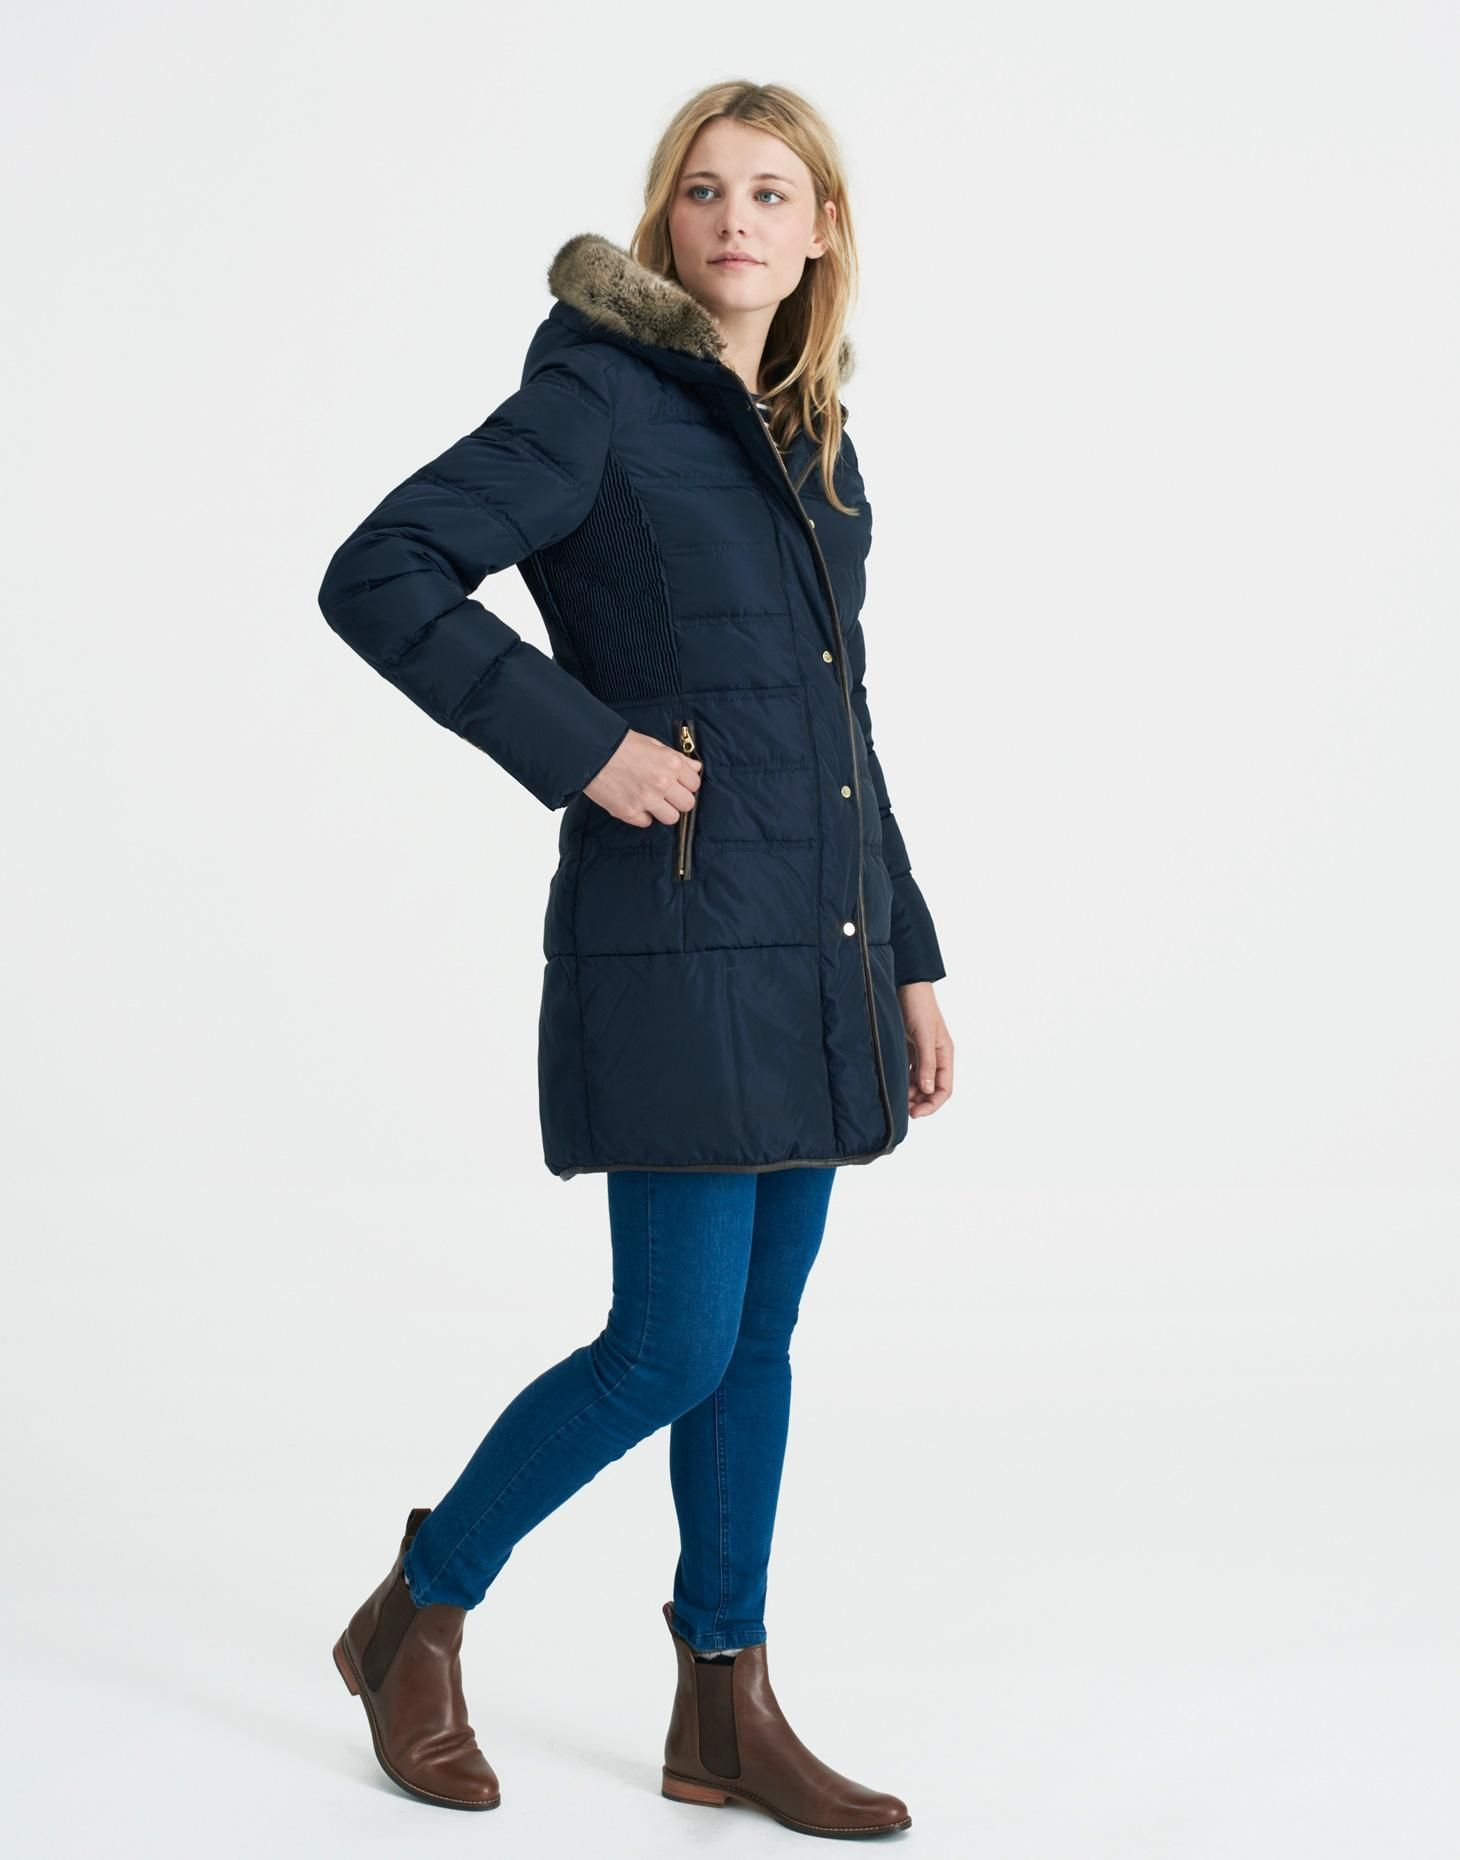 Blisworth Marine Navy Padded Jacket | Joules US | Clothes ... : joules ladies quilted jackets - Adamdwight.com